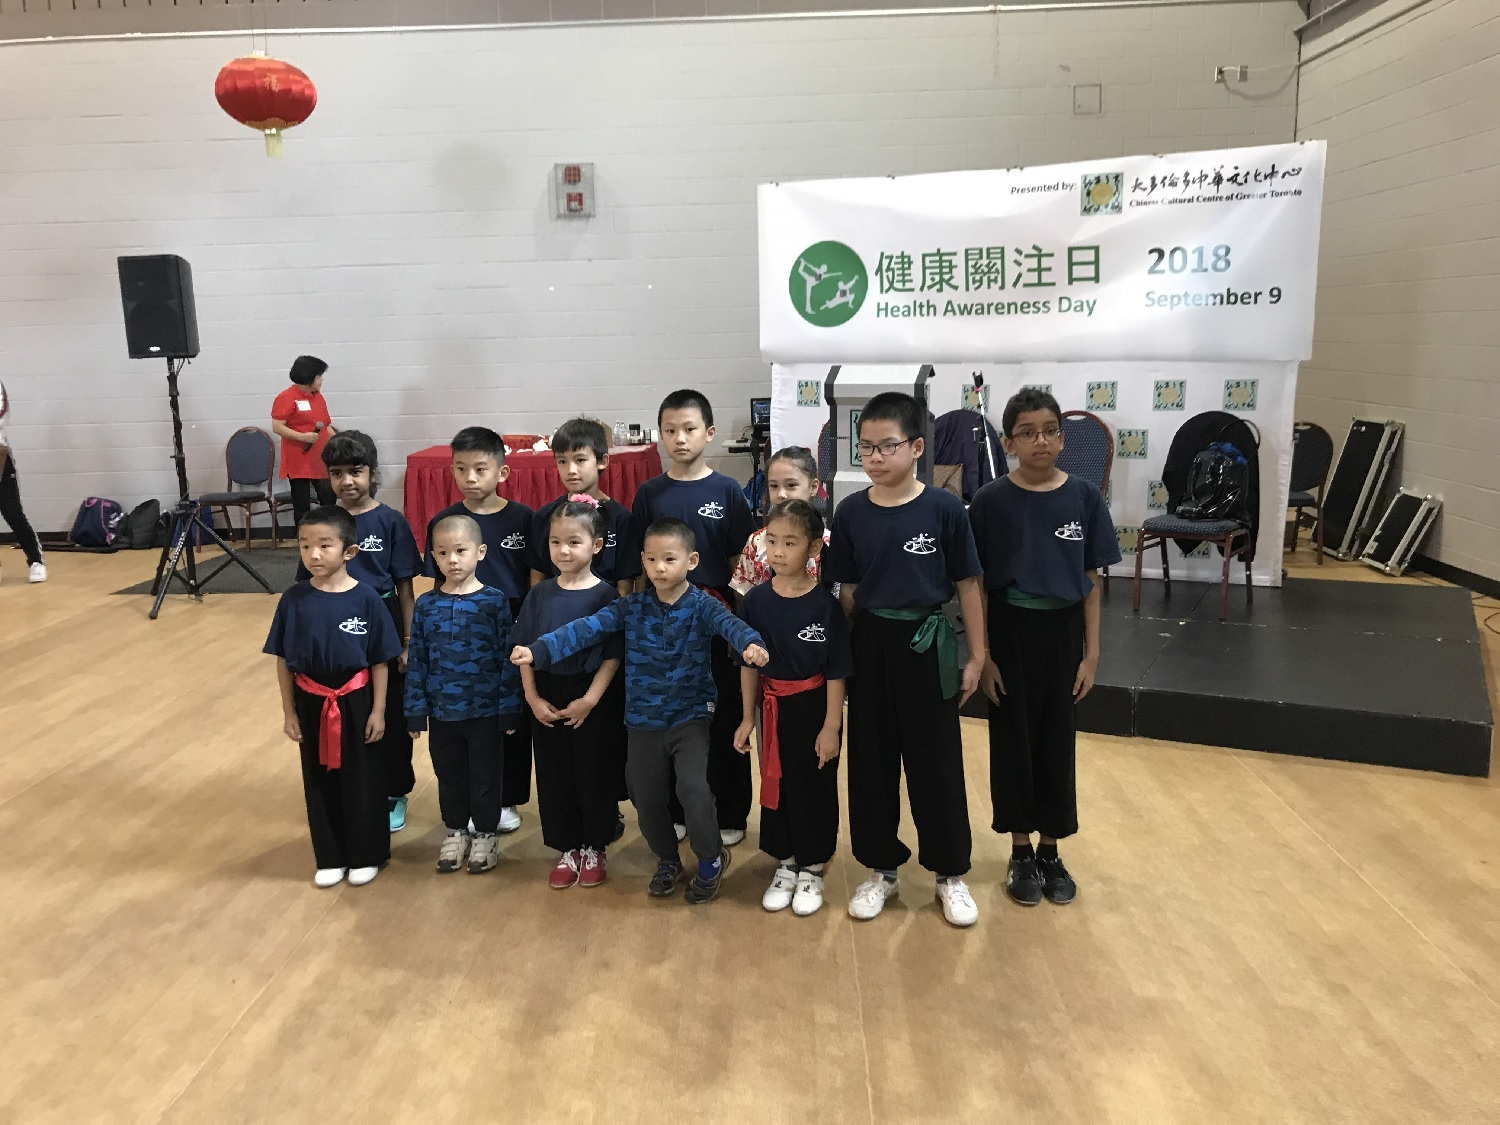 wayland-li-wushu-health-awareness-day-chinese-cultural-centre-of-greater-toronto-2018-02.jpg